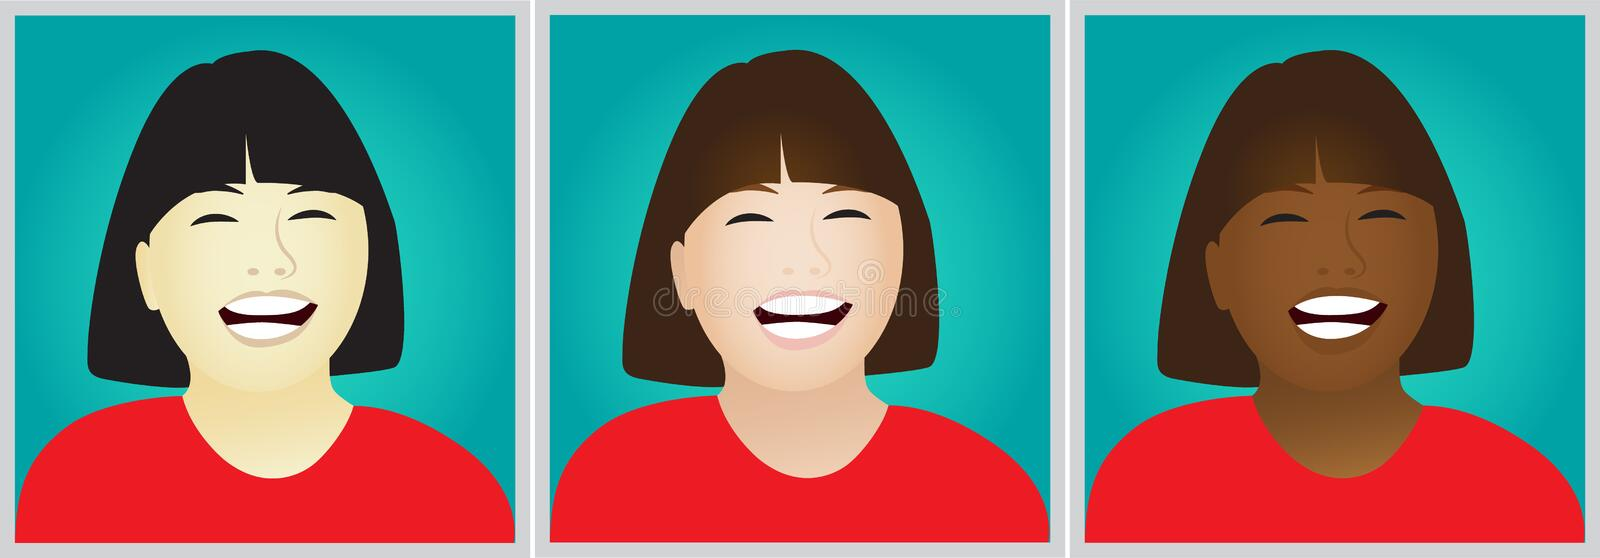 Laughing girls clipart royalty free illustration